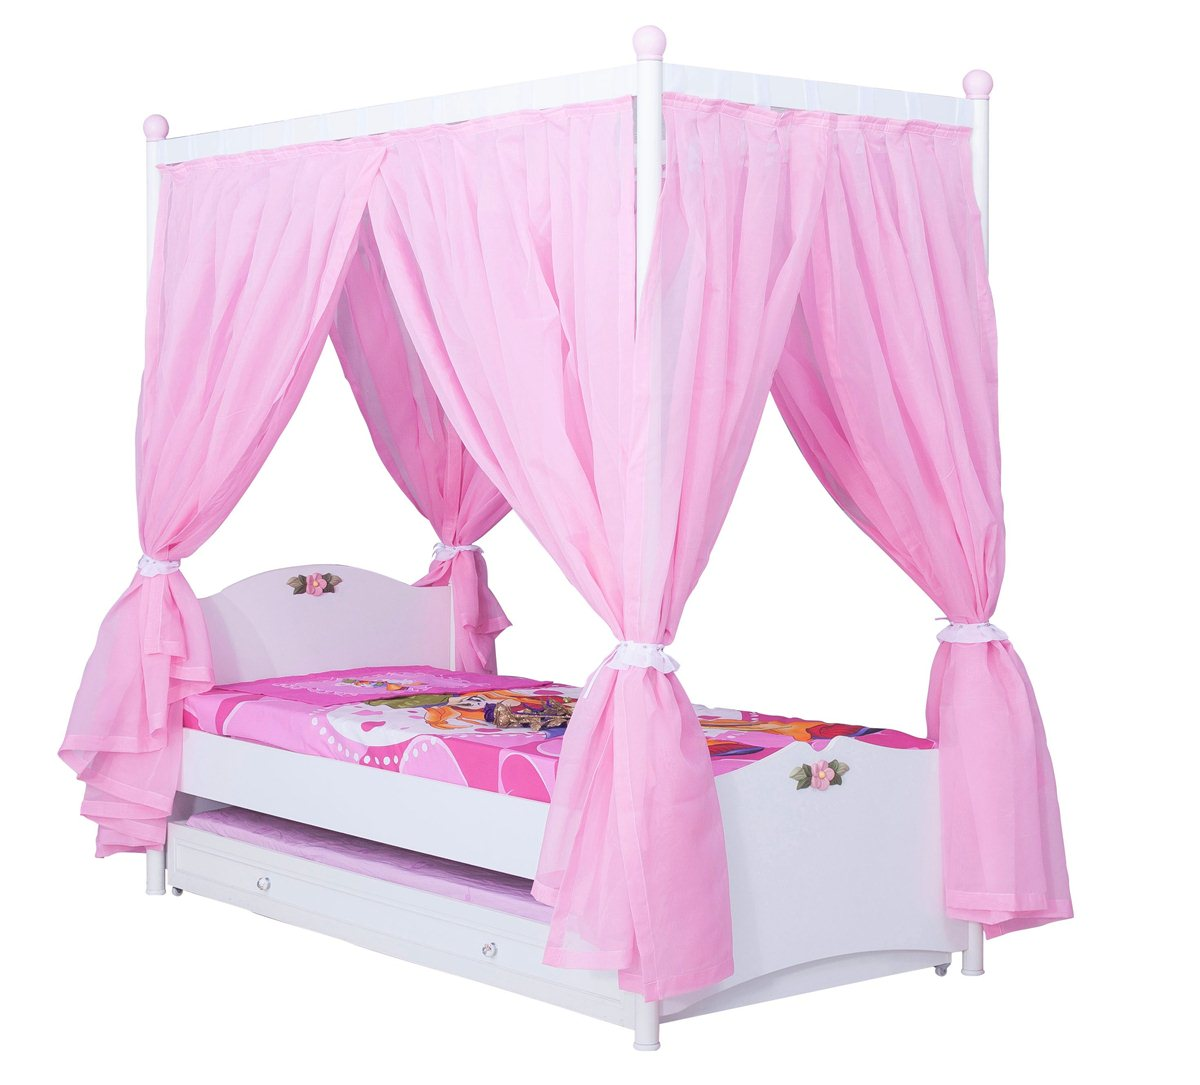 cindy himmelbett standardbett kinderzimmer m bel m dchen kinderbett ebay. Black Bedroom Furniture Sets. Home Design Ideas